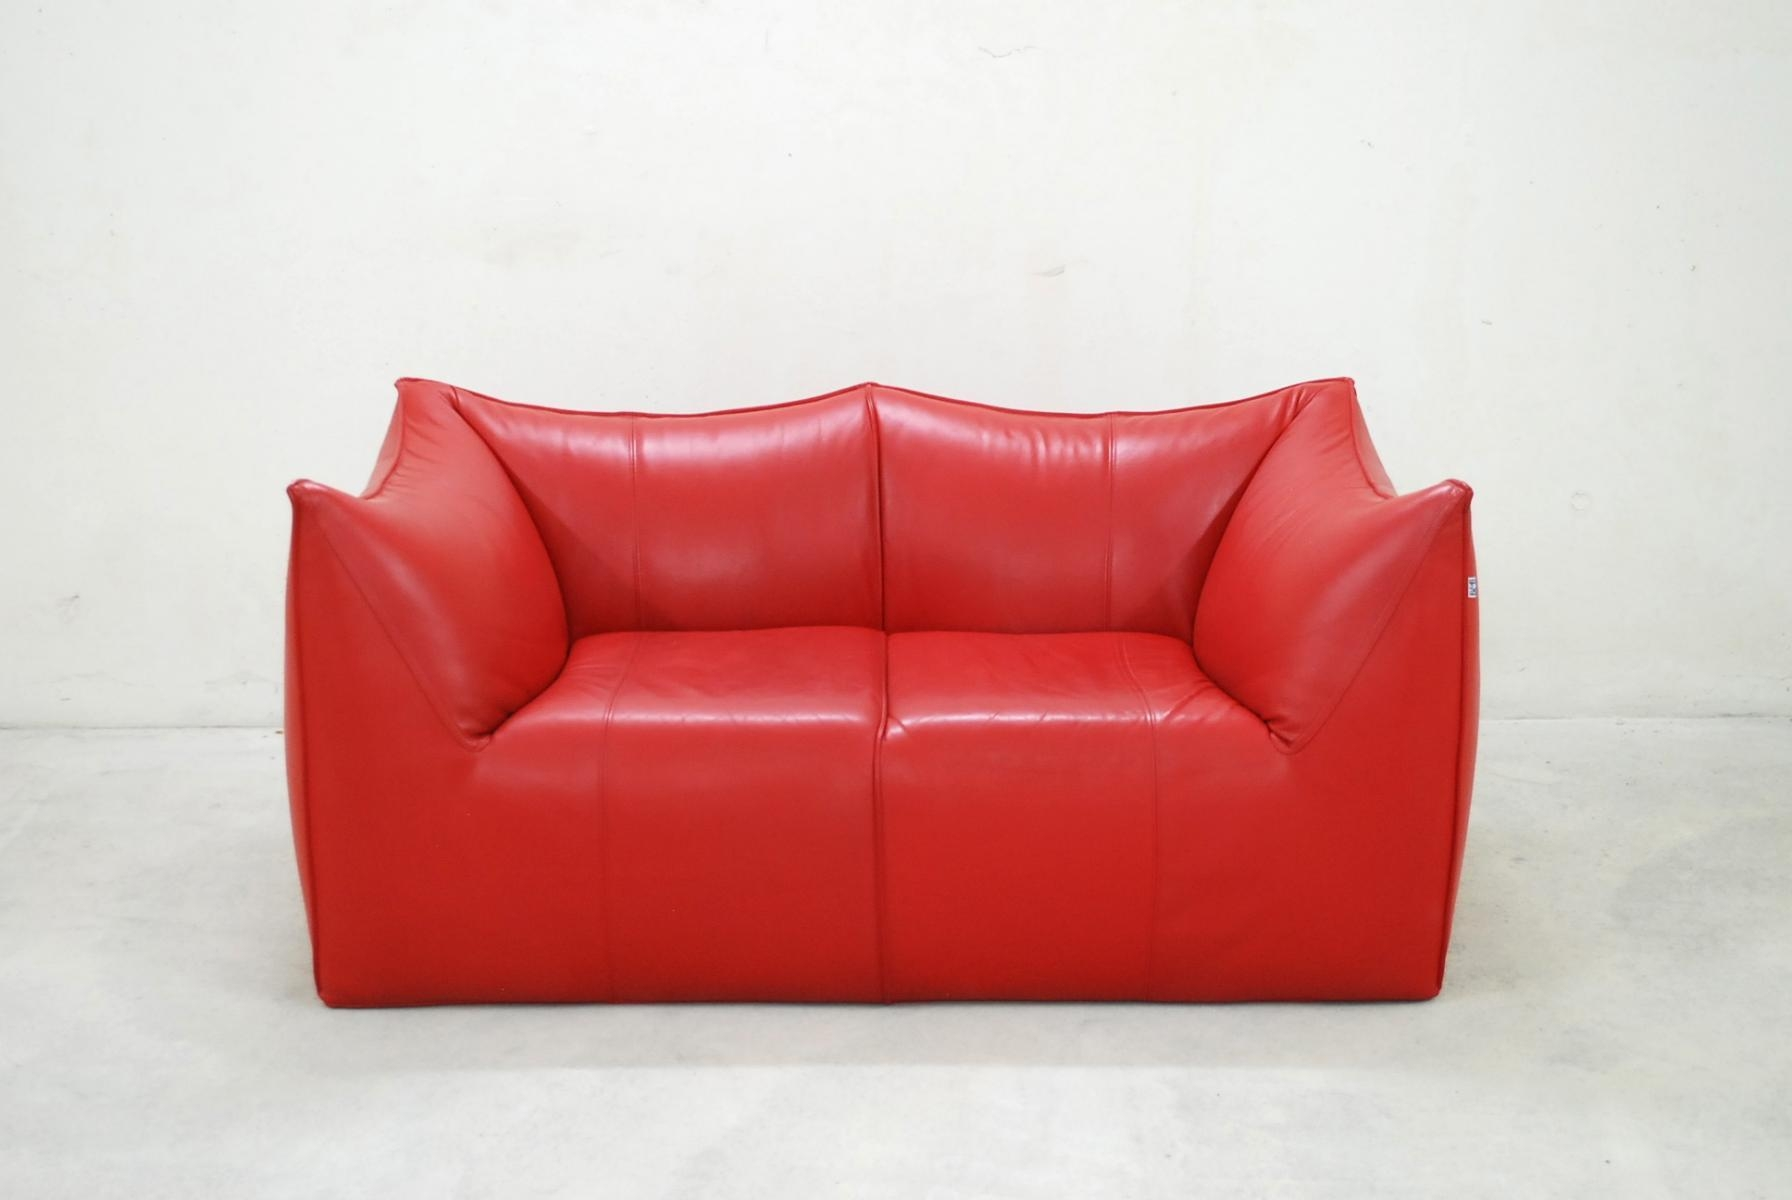 Italian Le Bambole Leather Sofamario Bellini For B&b Italia With Regard To Bellini Couches (View 3 of 20)